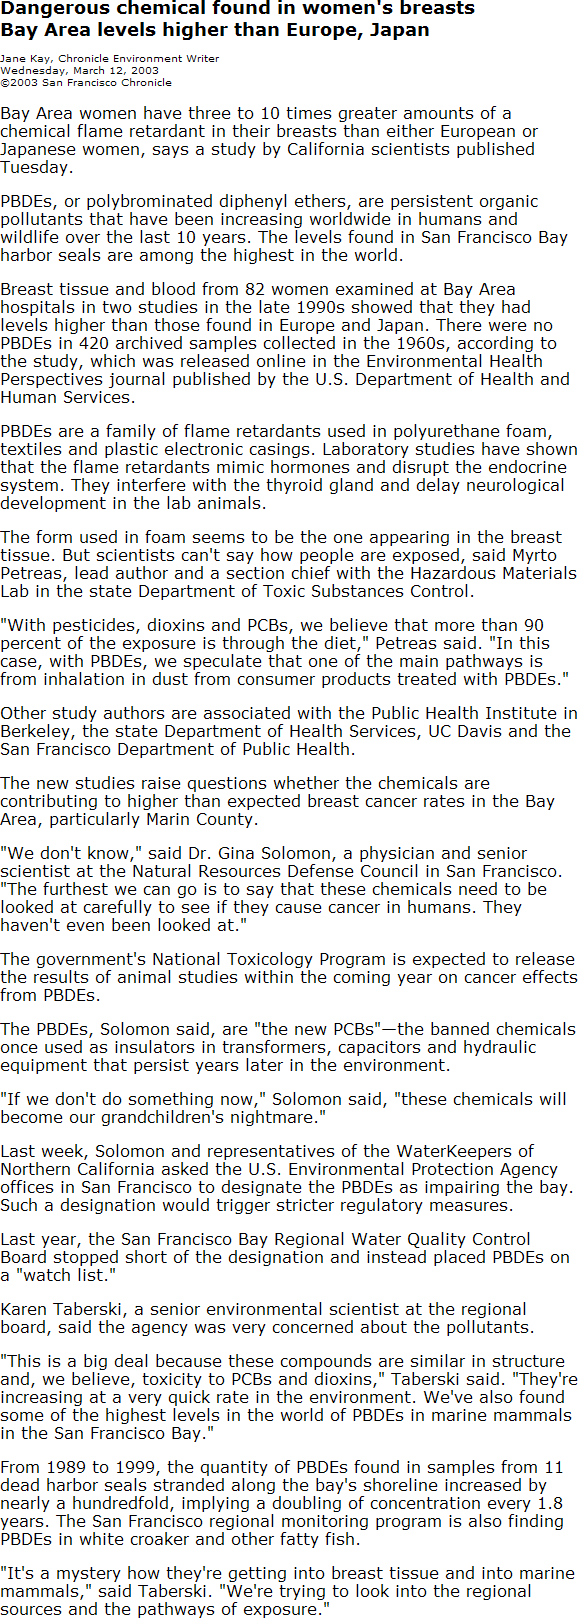 San Francisco Chronicle health article